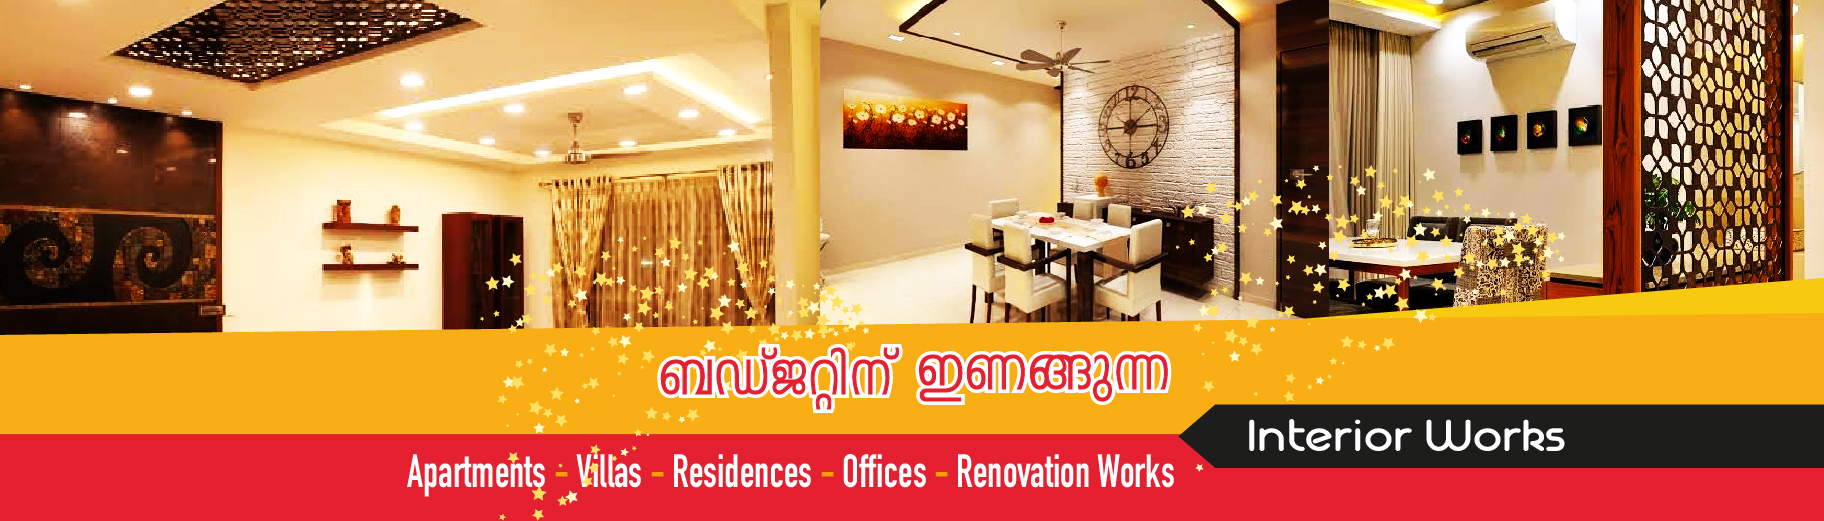 flat interior renovation works, house constructions in trivandrum , showroom works in  trivandrum, interior designer in poojappura,  interior works in  karamana,  interior works in vazhuthacaudu,  interior works in vellayambalam